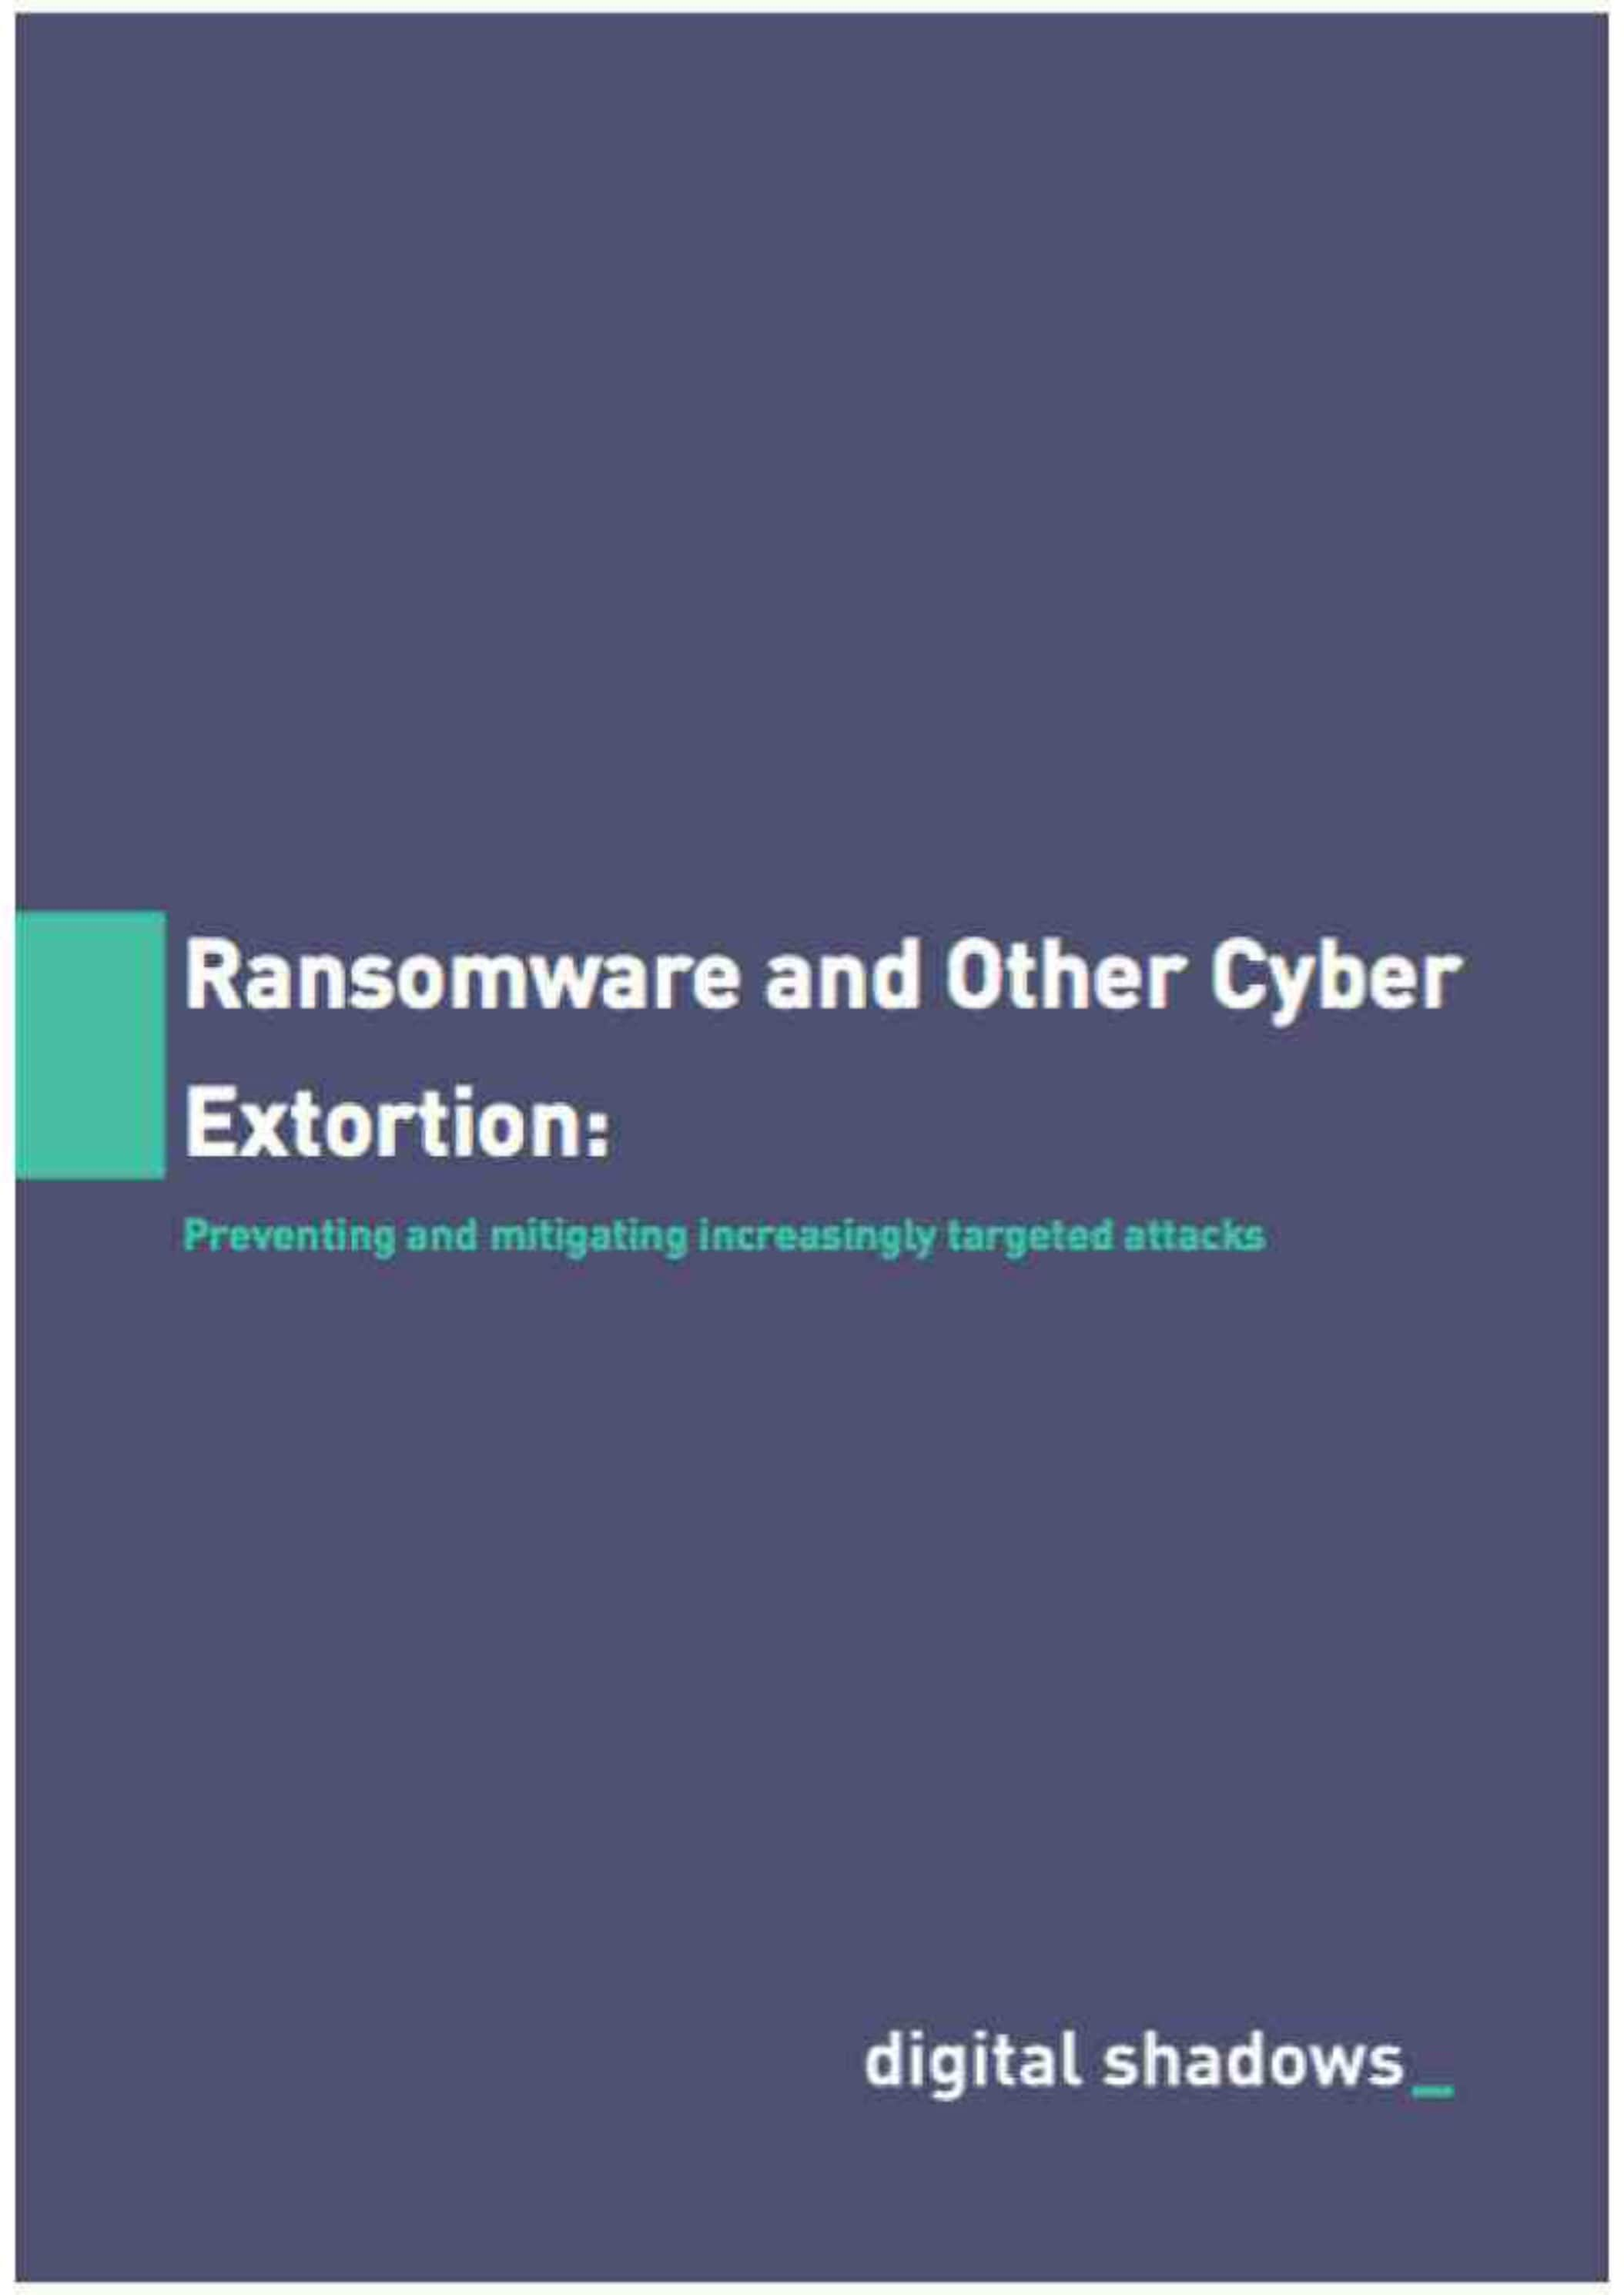 Ransomware and Cyber Extortion min